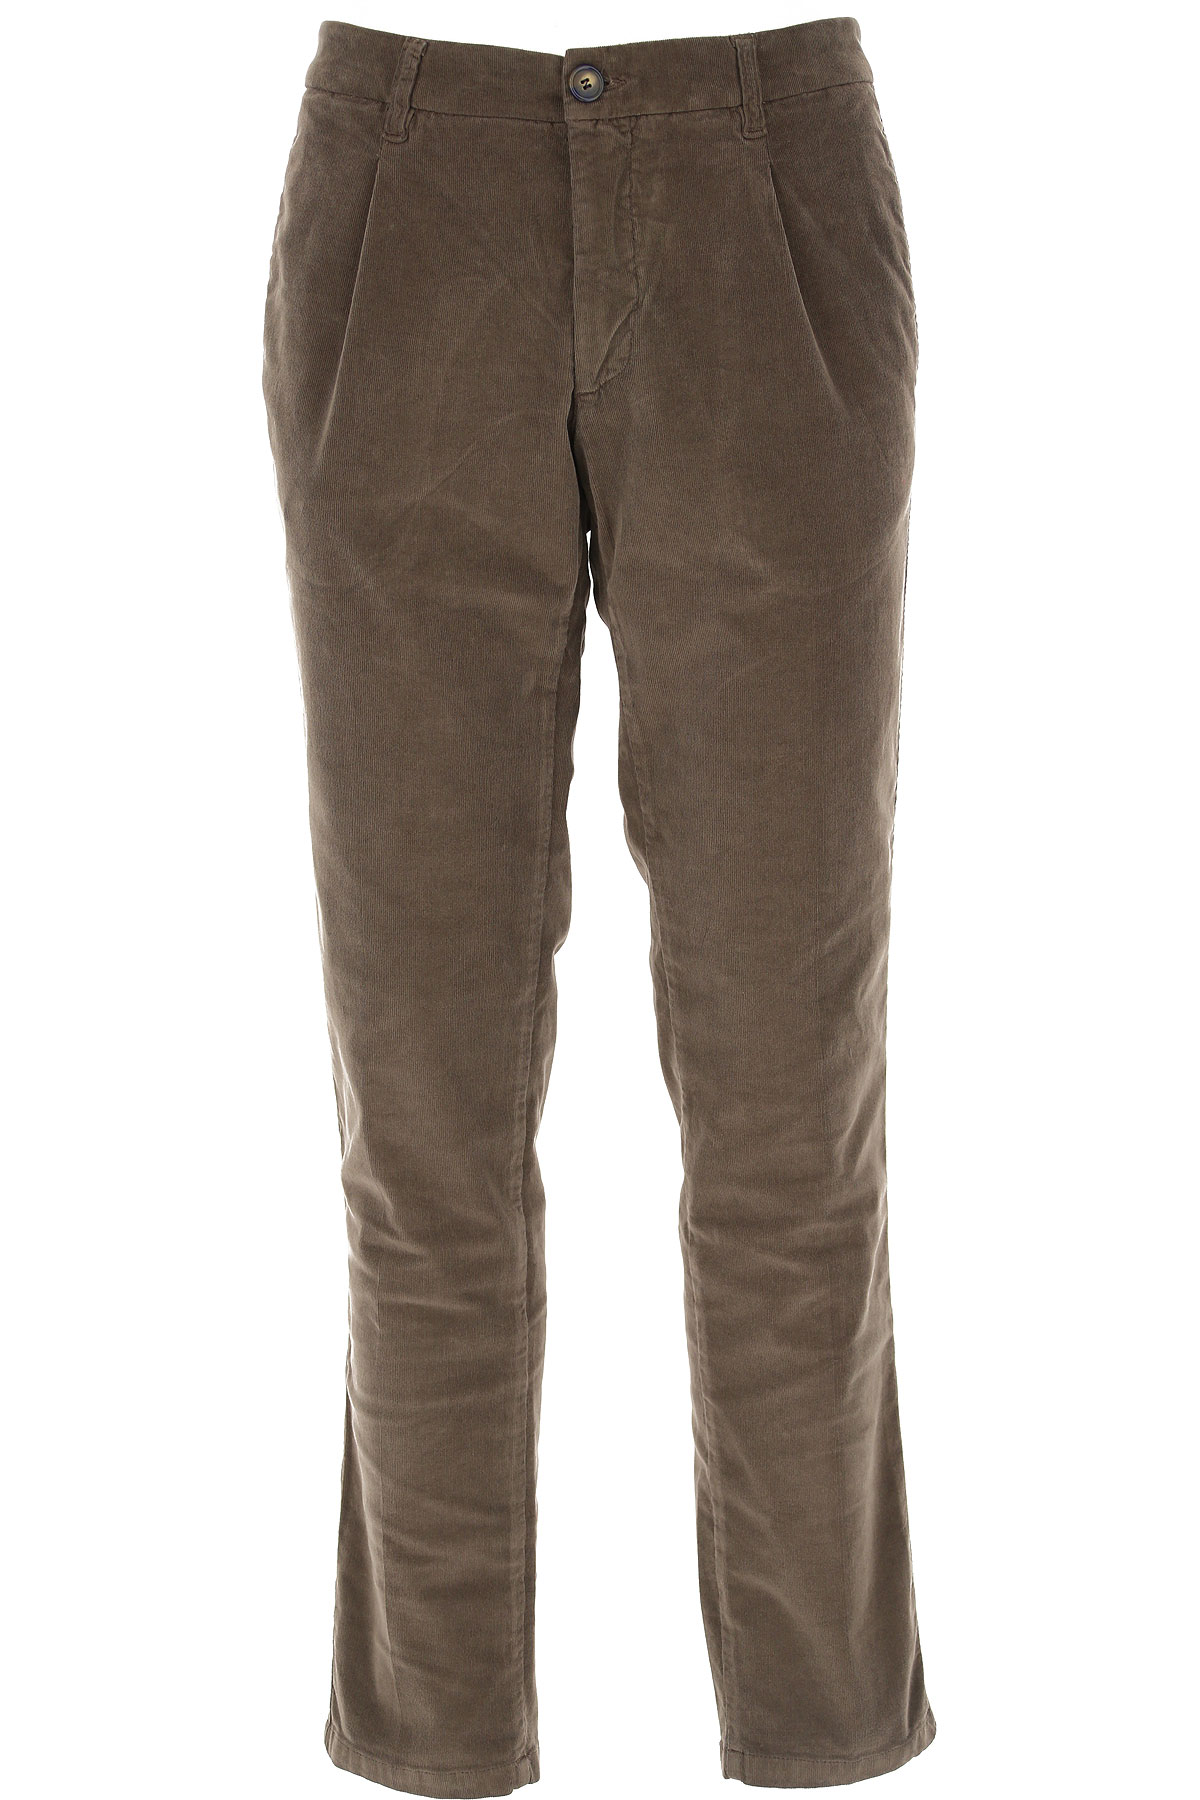 J.W. Brine Pants for Men, Mud, Cotton, 2019, 30 34 36 38